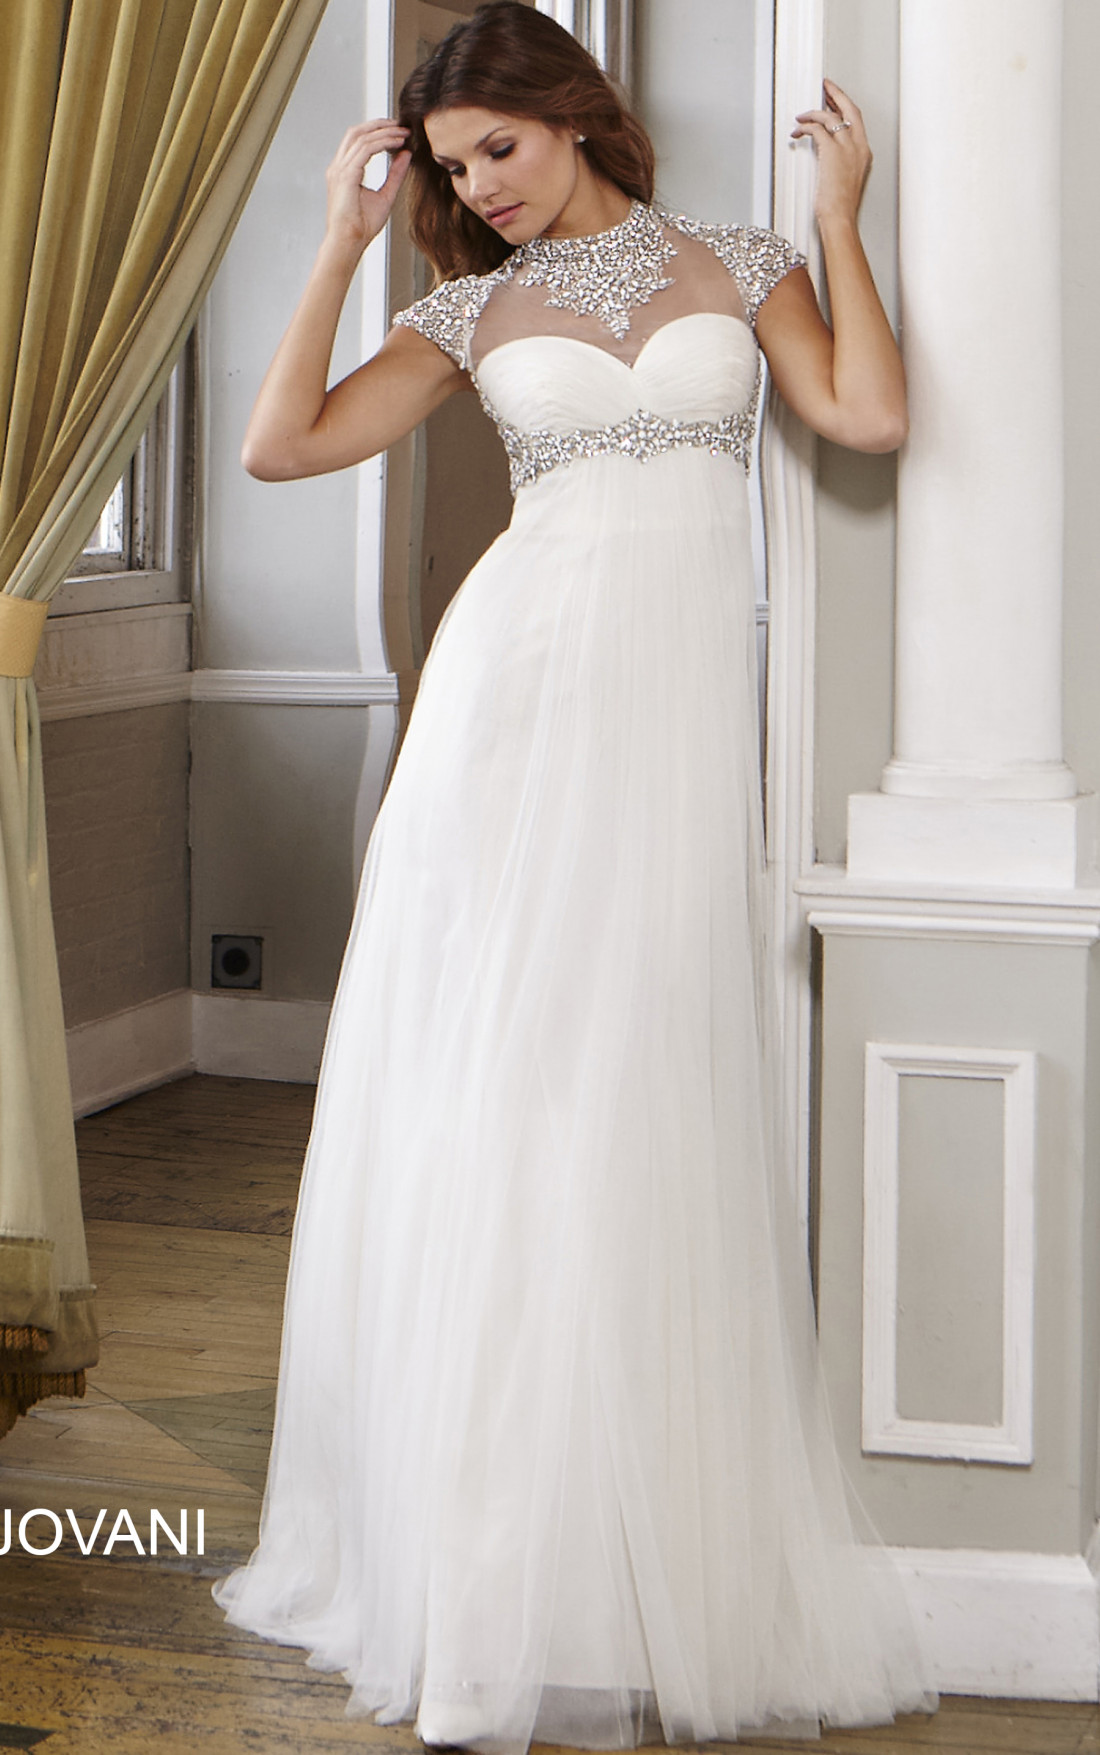 Jovani - Empire Waist Ivory Wedding Gown